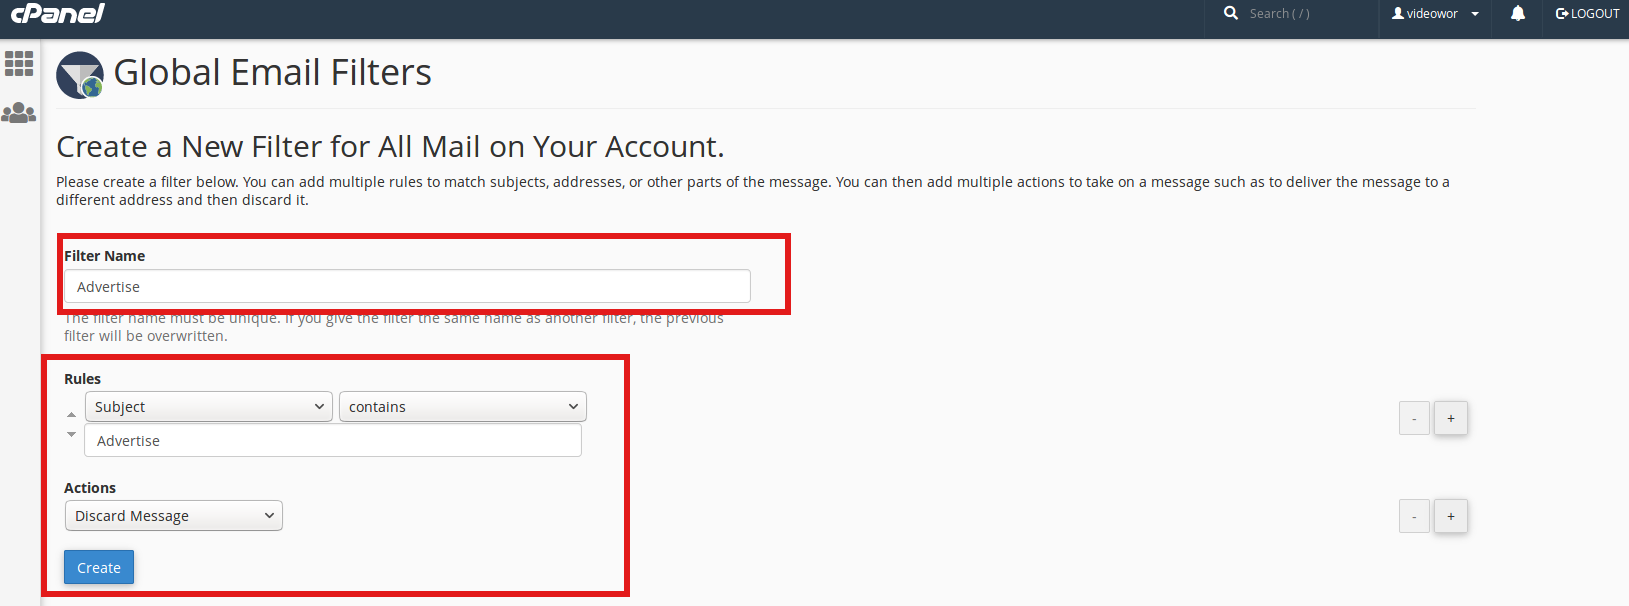 How to create a Global Email Filter in cPanel | HostOnNet com